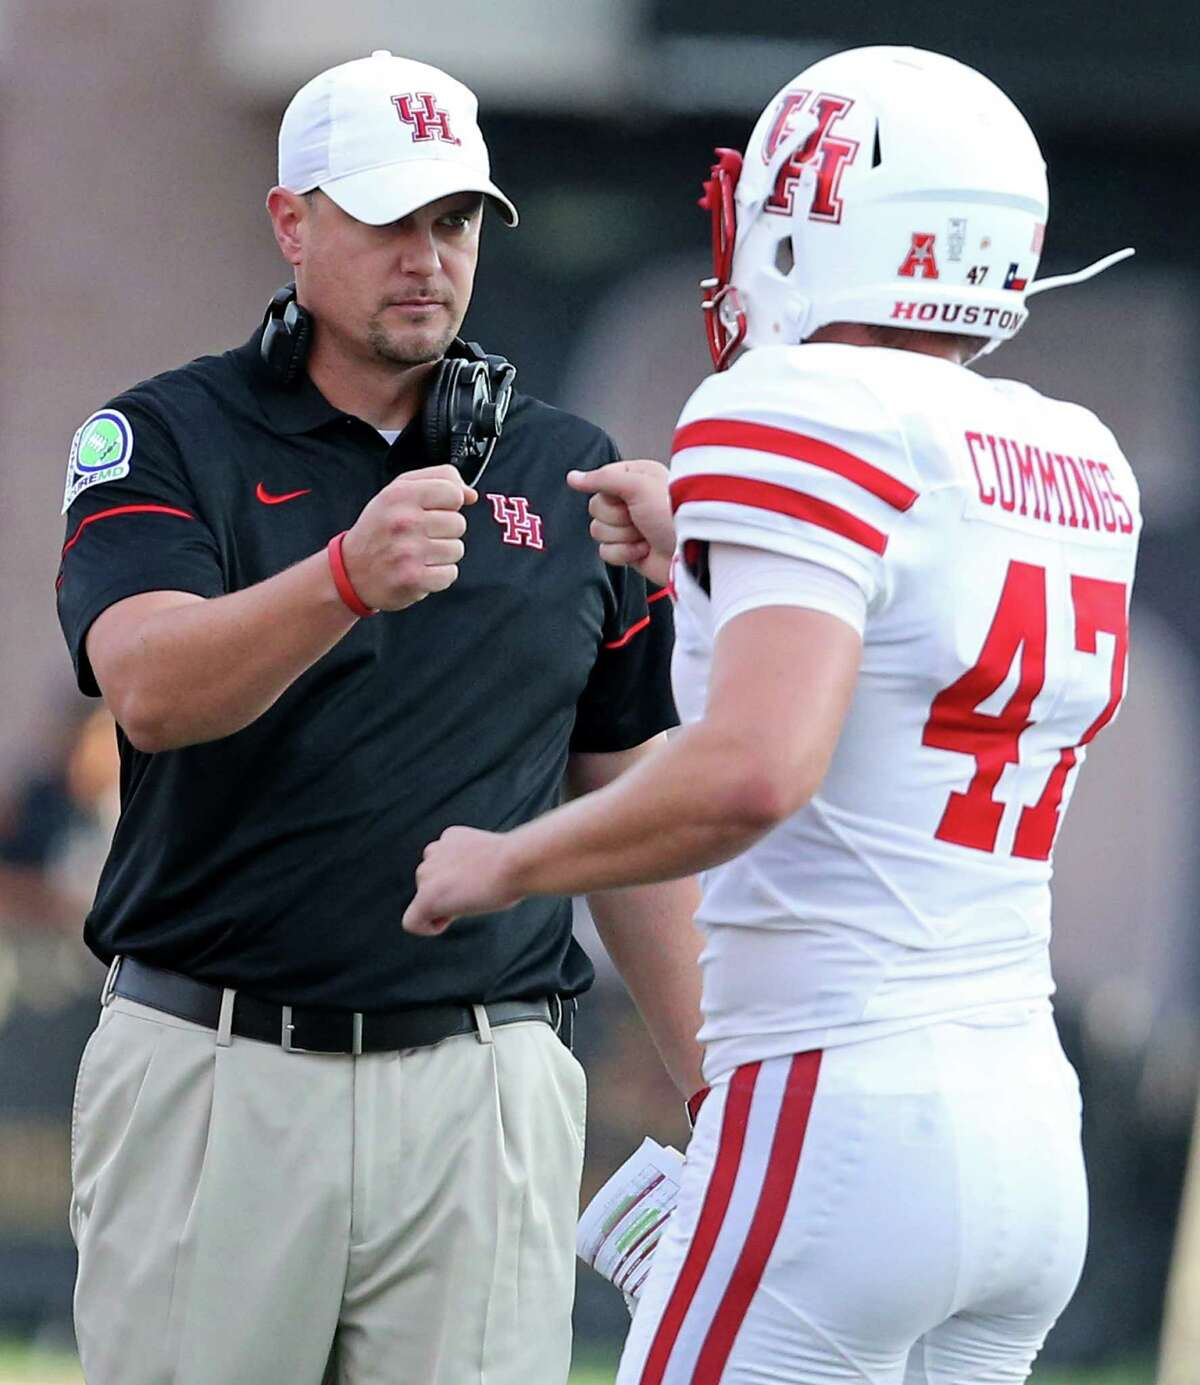 Houston Cougars head coach Tom Herman fist bumps Houston Cougars place kicker Ty Cummings after a field goal during first half action against the Texas State Bobcats Saturday Sept. 24, 2016 at Bobcat Stadium in San Marcos, Tx.